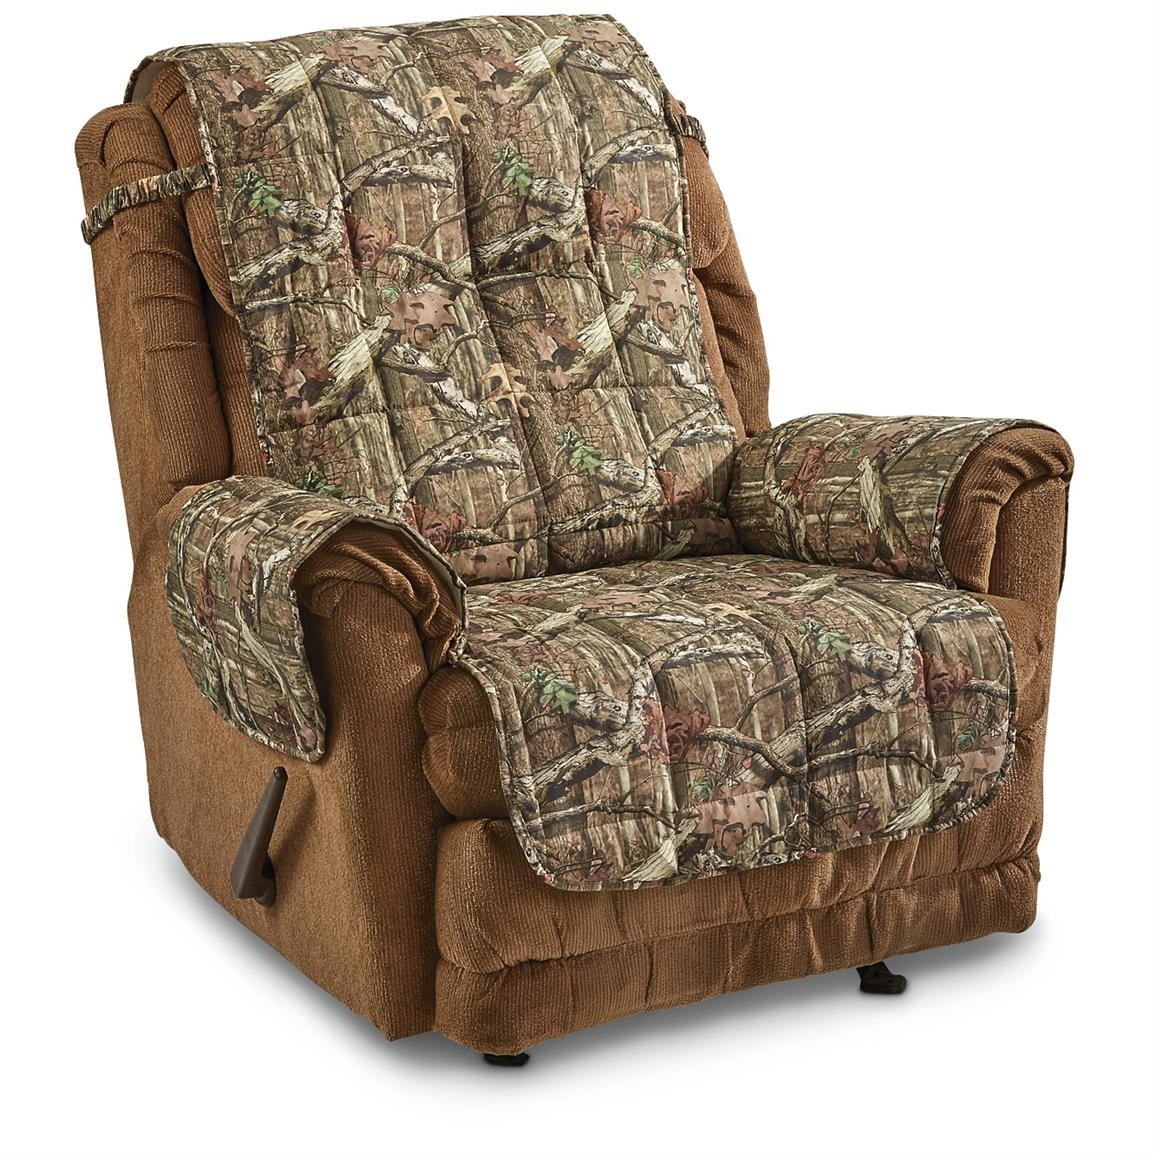 Mossy Oak Camo Furniture Covers 647980 Furniture Covers At Inside Camo Sofa Cover (#11 of 12)